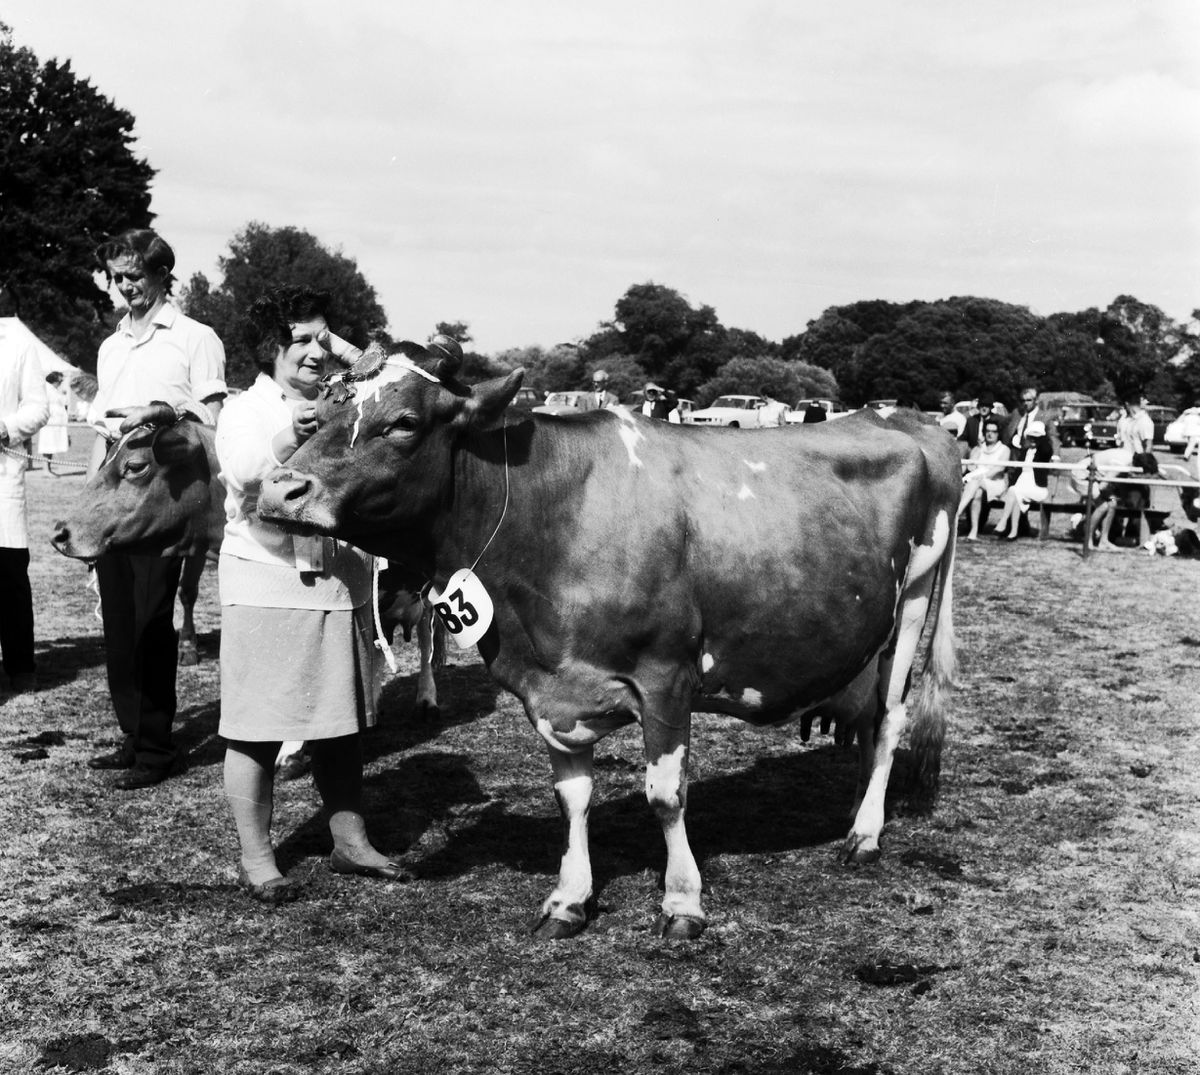 A prize-winning cow in 1971. (28515847)